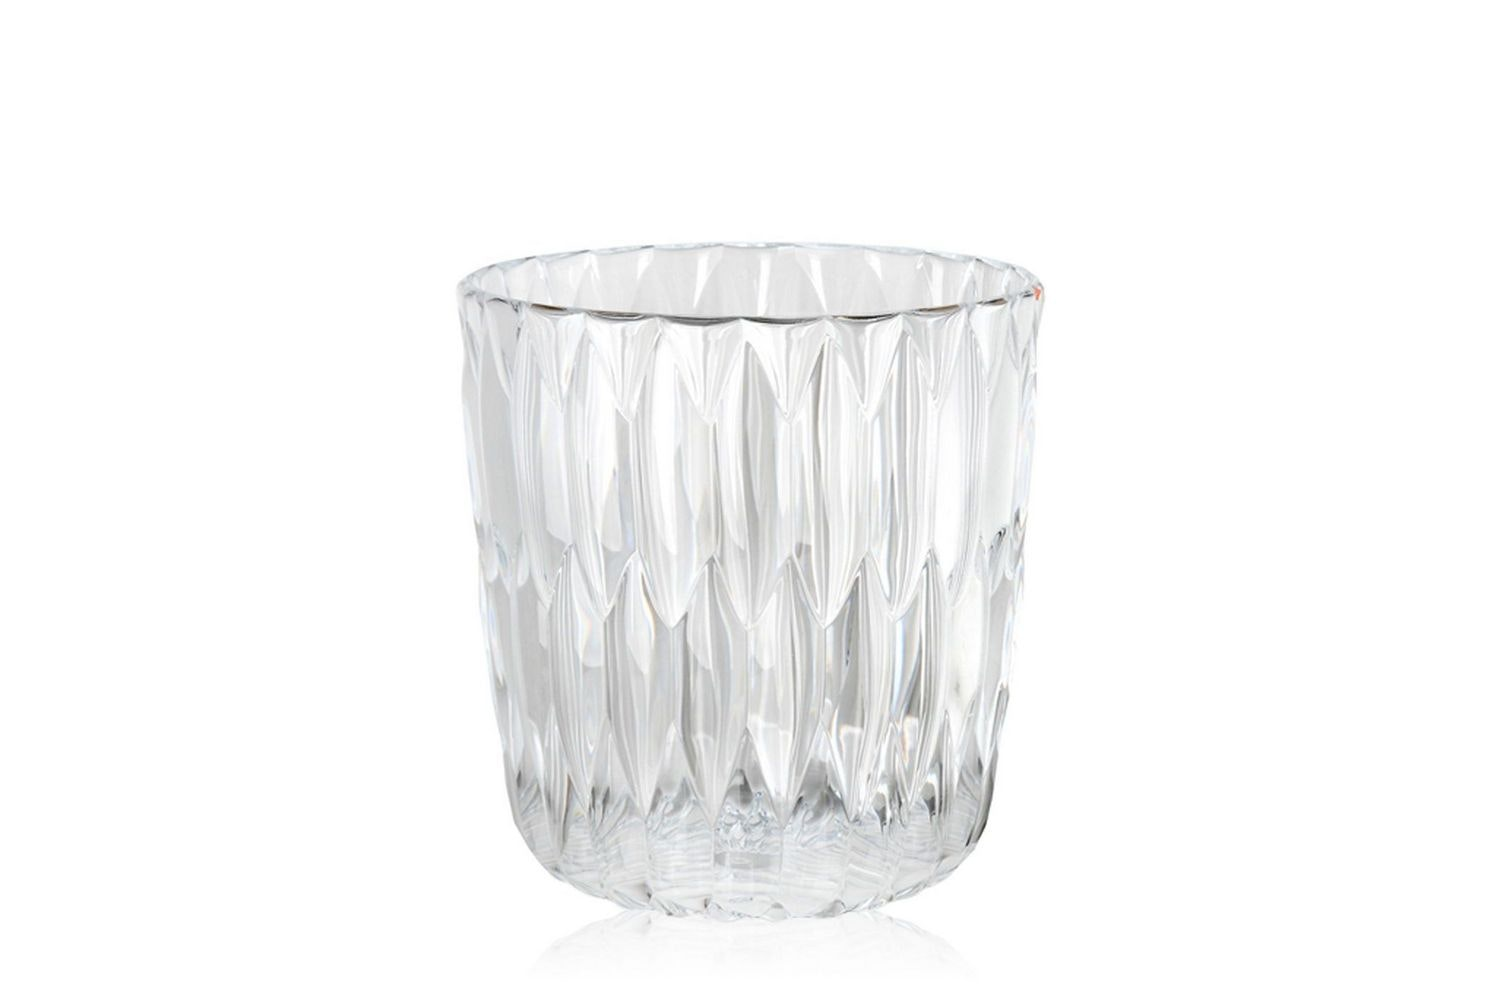 Jelly Vase by Patricia Urquiola for Kartell